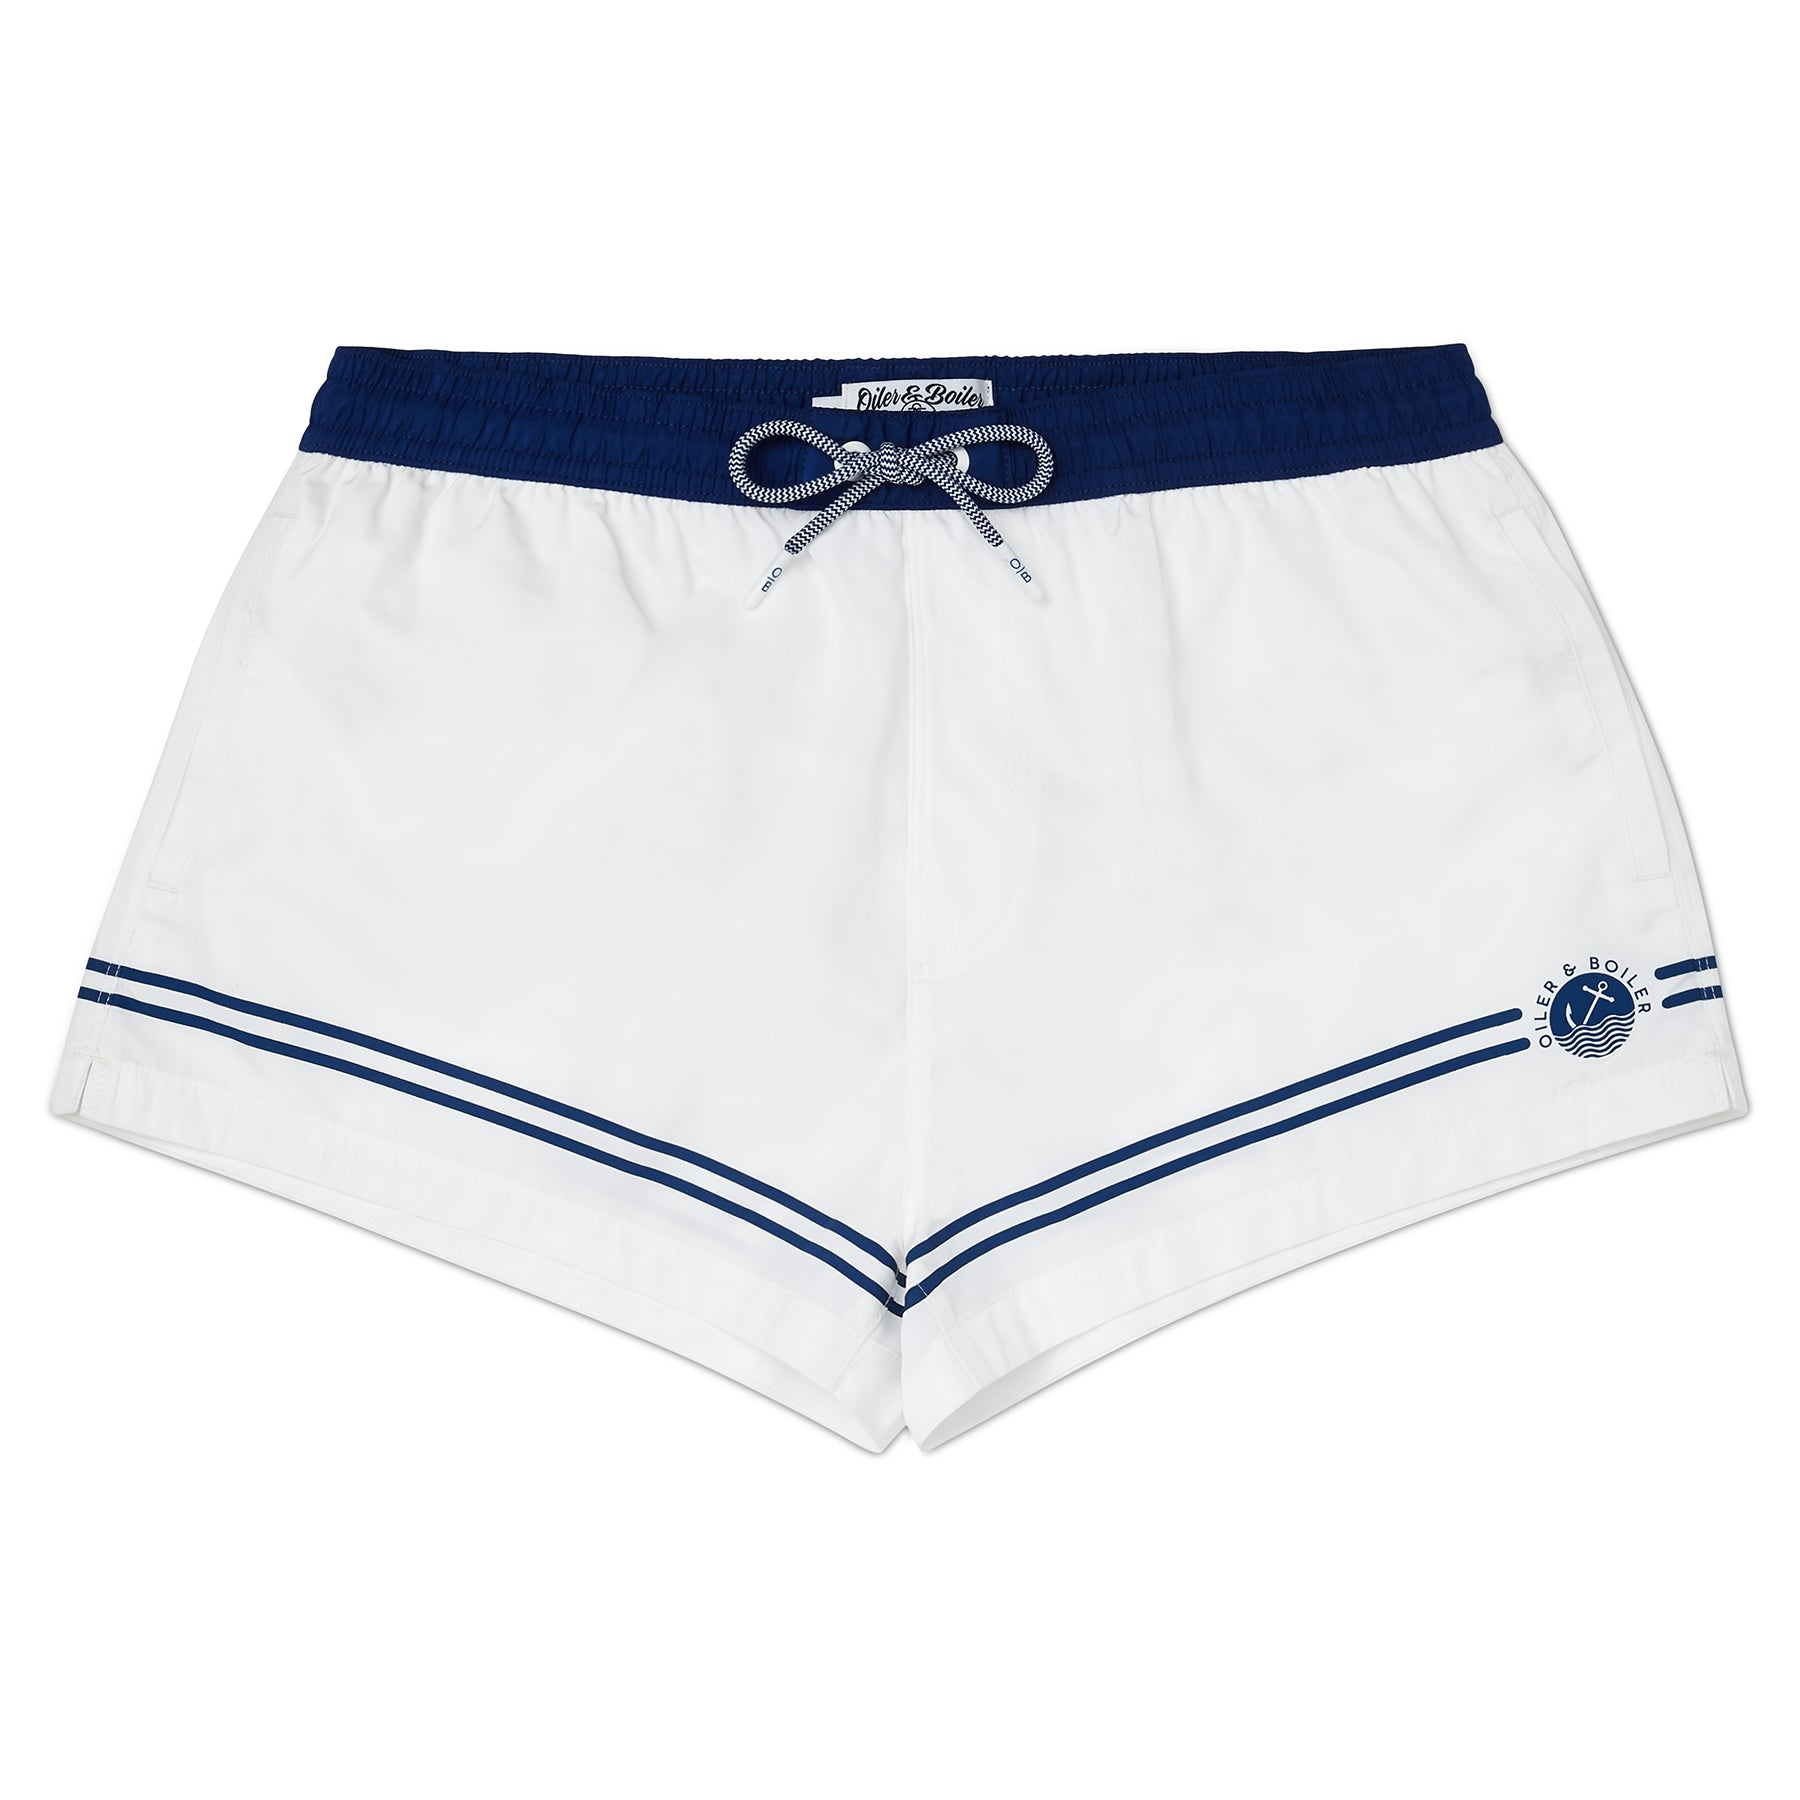 White and Marine Blue Leg Stripe & Logo Swim Short, Shorter Length